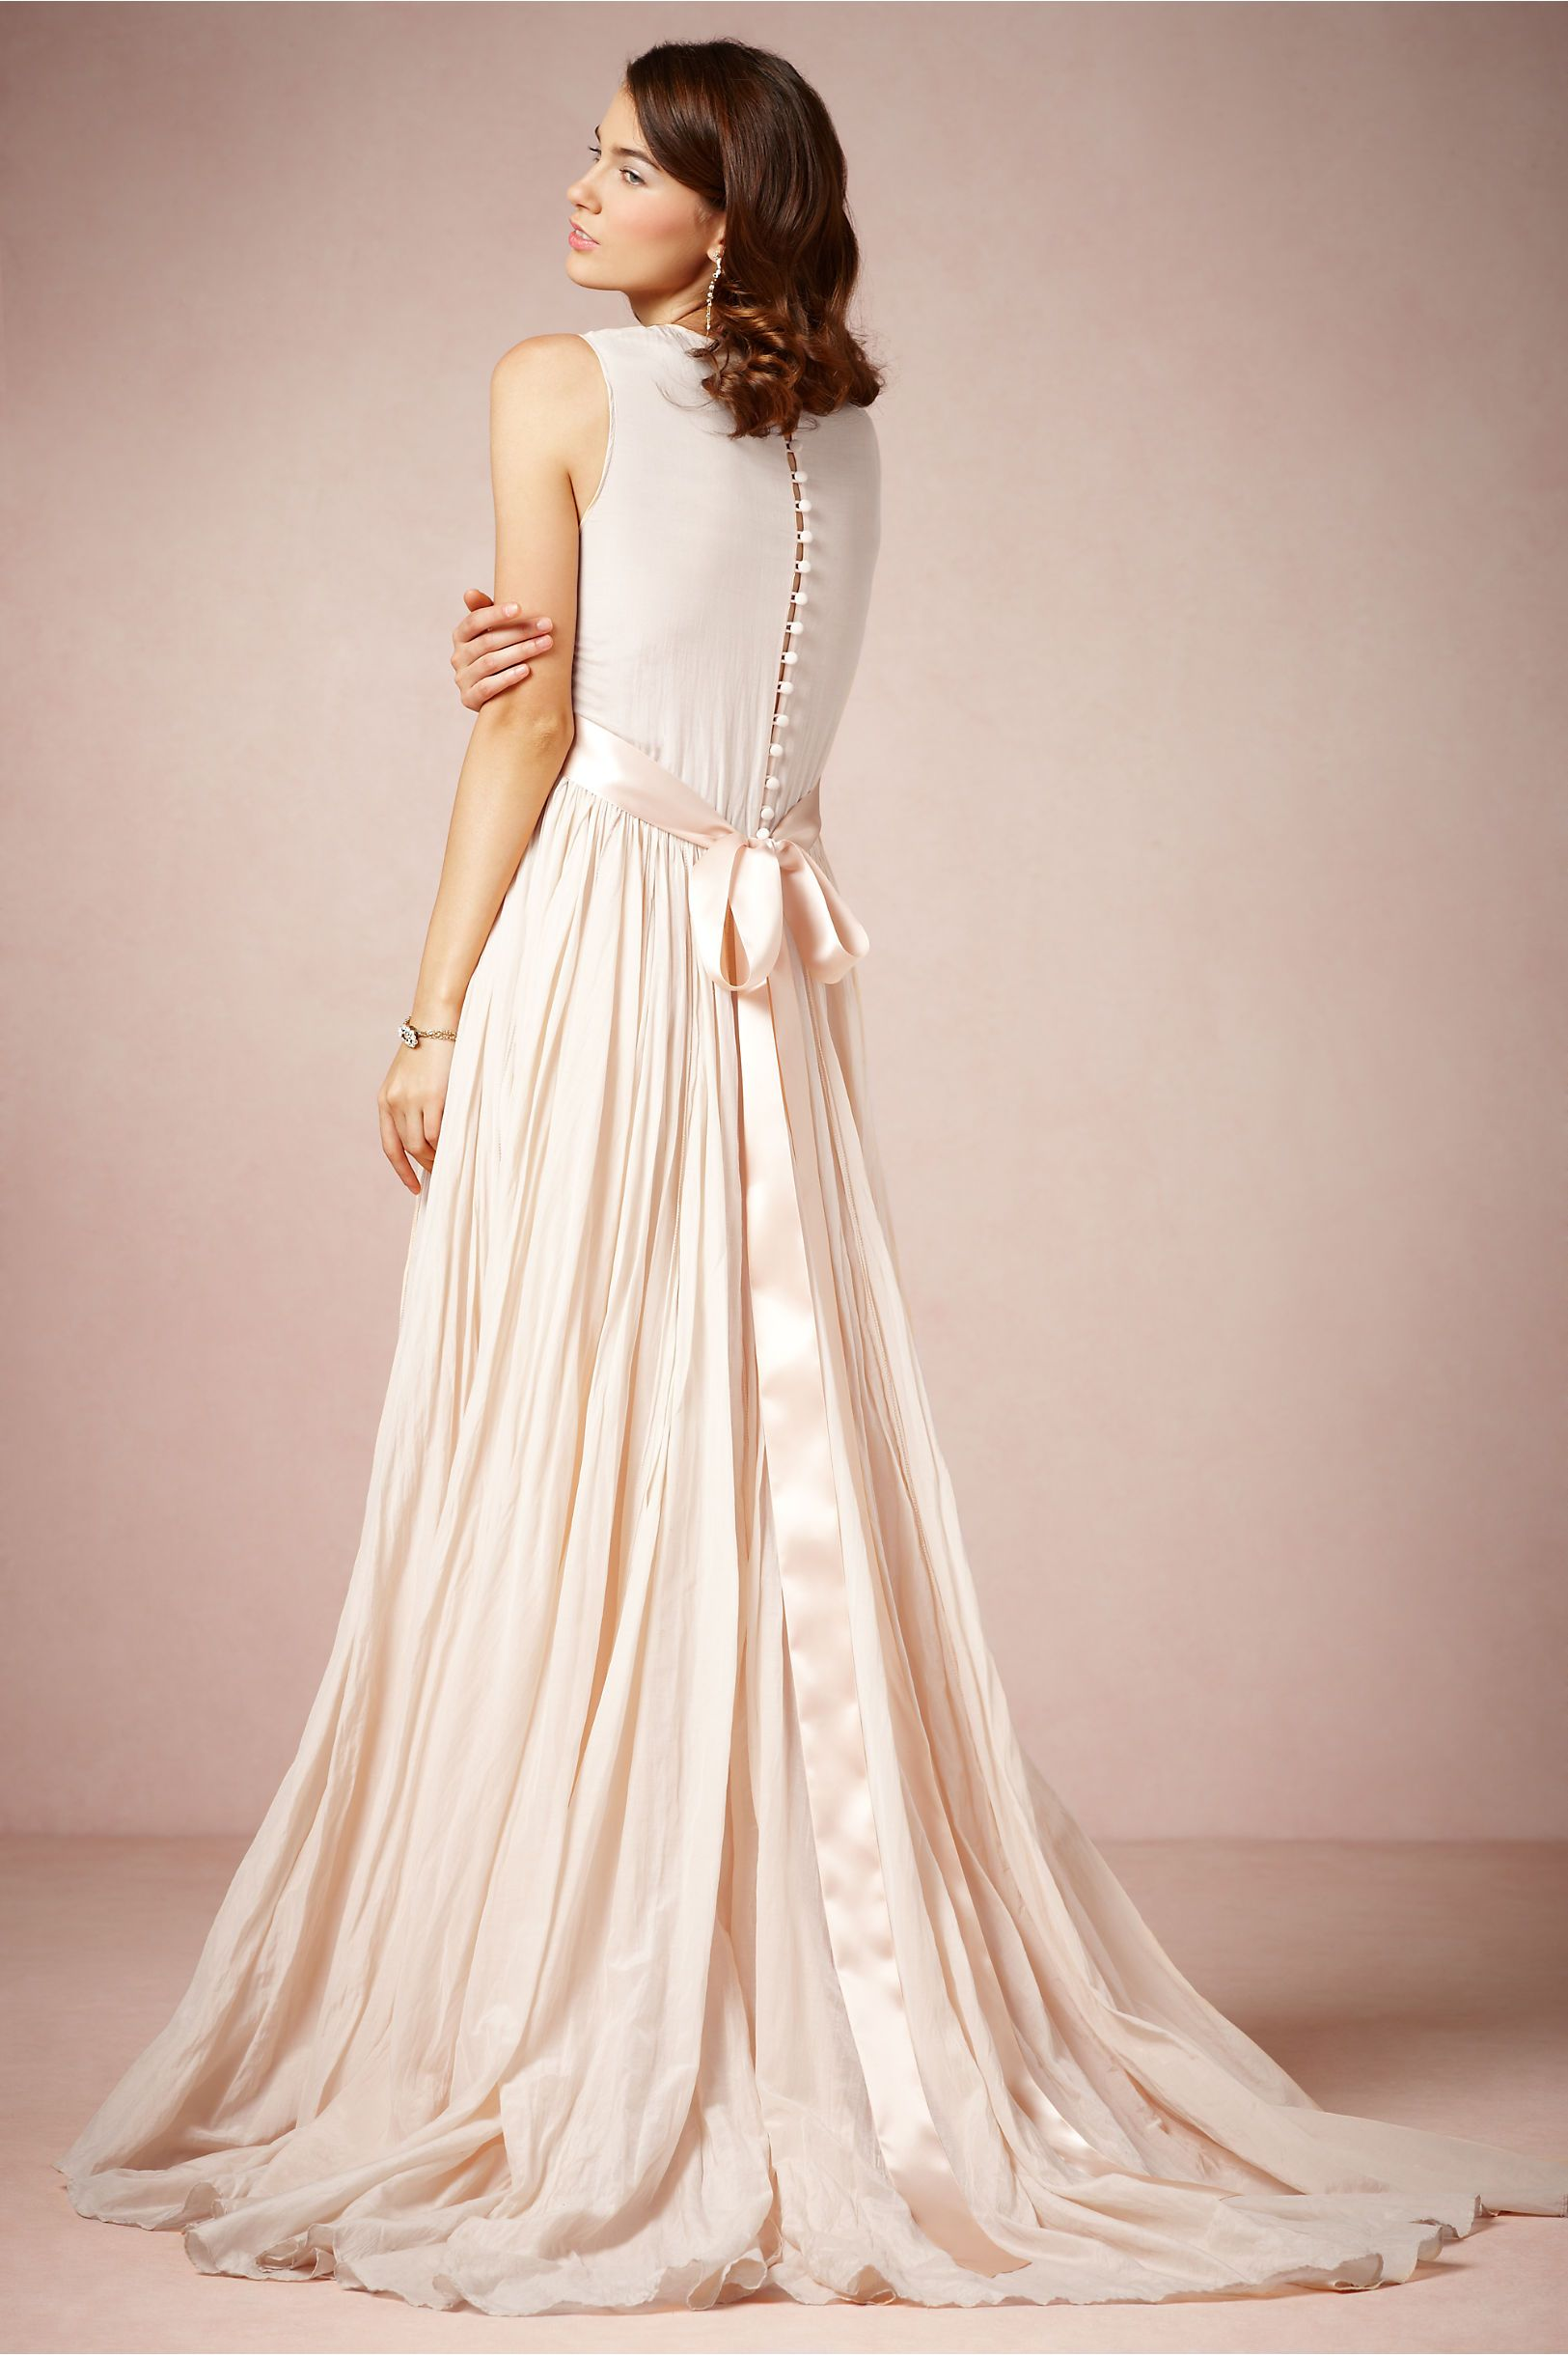 533c7803cd8b6 product | Julie Gown by Peter Som for BHLDN | Blush Wedding Ideas ...